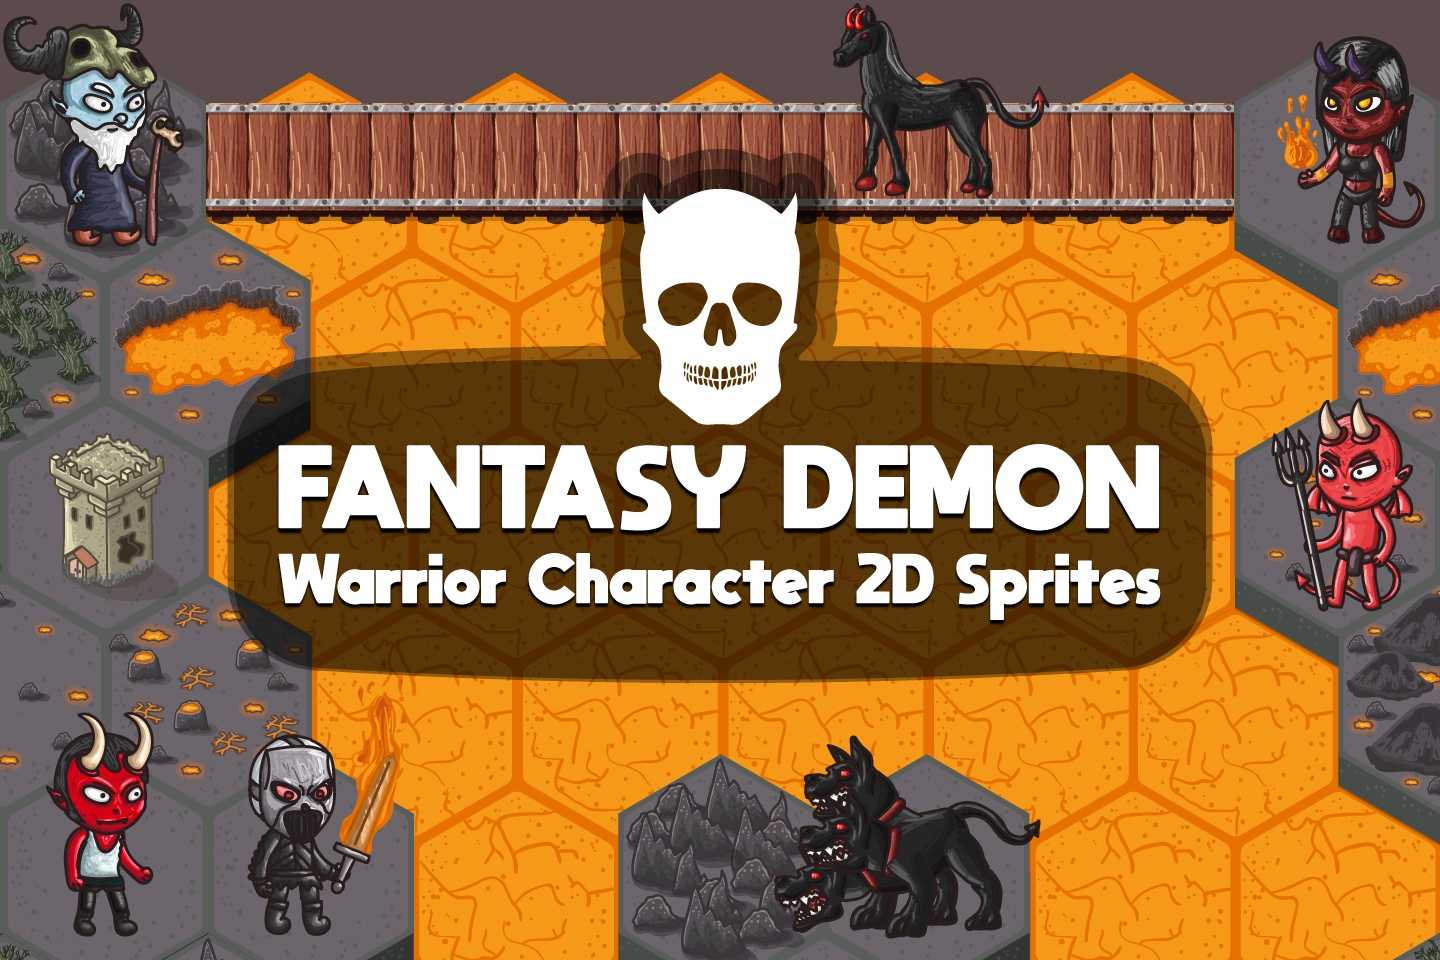 2D Fantasy Demon Warrior Character Sprites